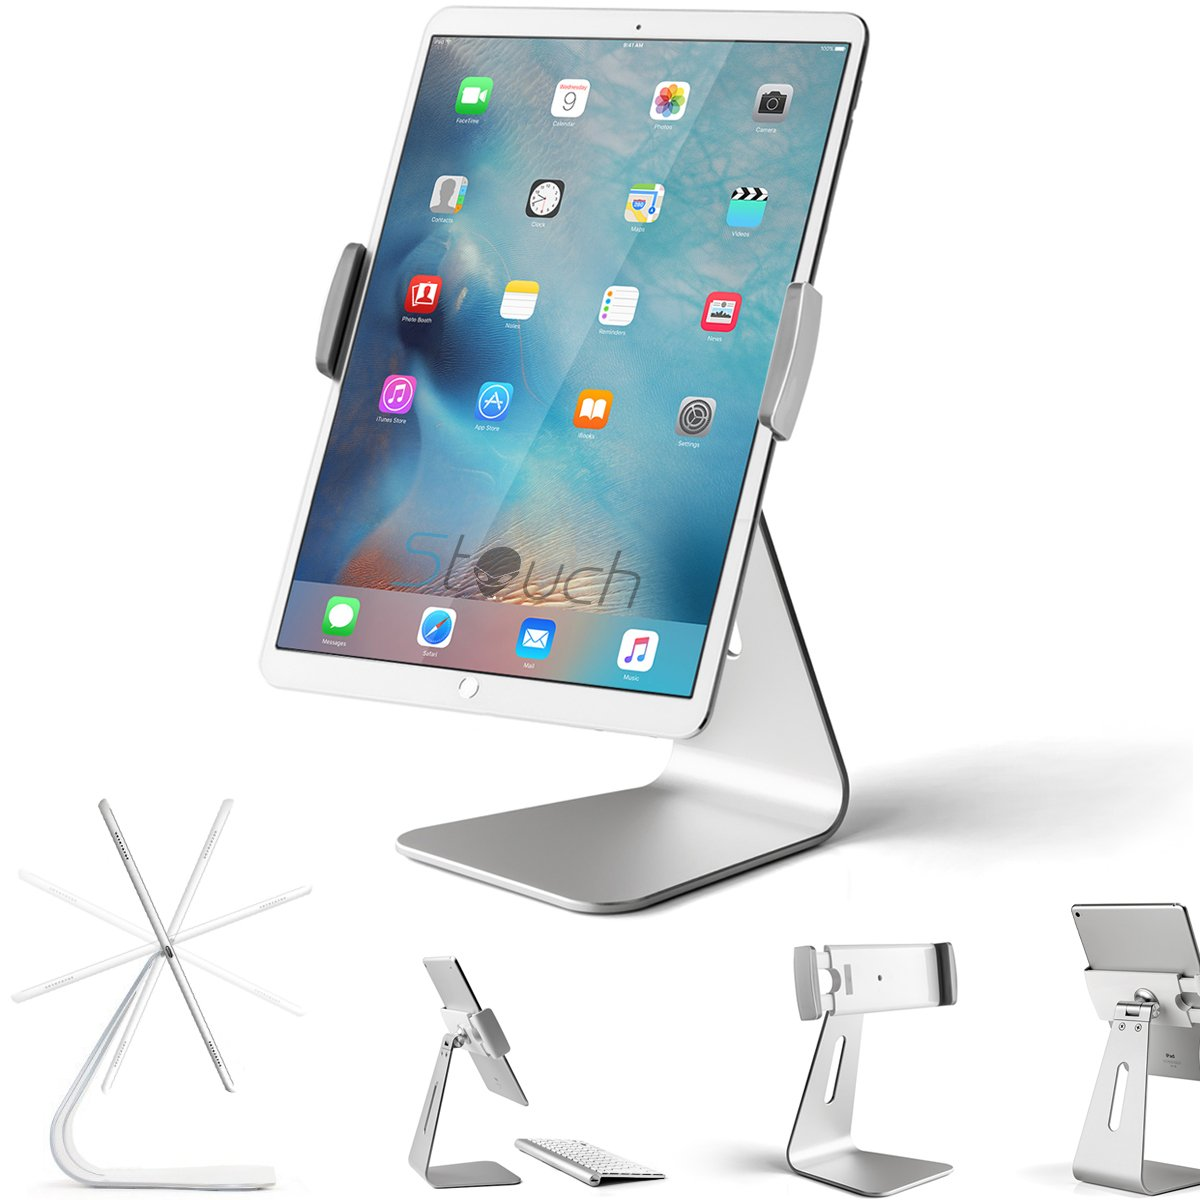 Top 5 Best iPad Pro Stands Reviews 2016-2017